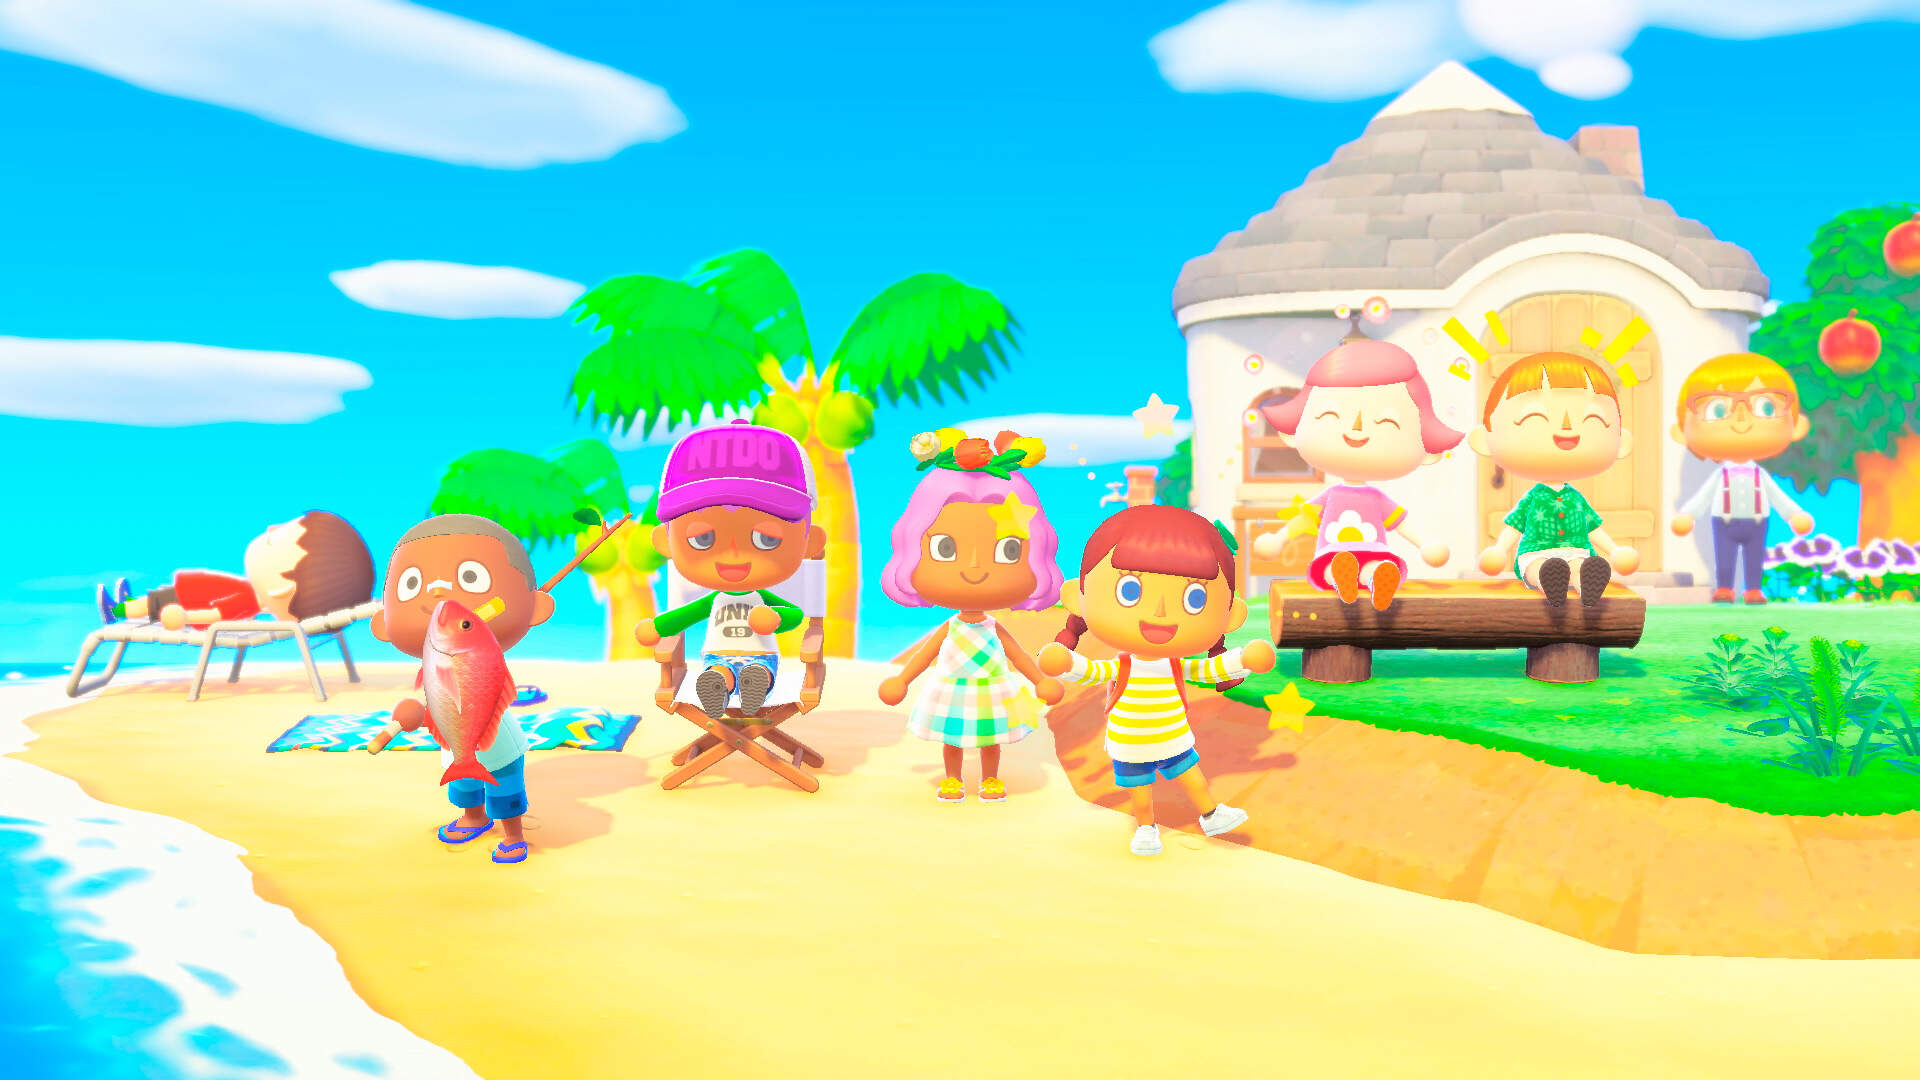 Nintendo Confirms Animal Crossing: New Horizons Won't Support Save File Transfer